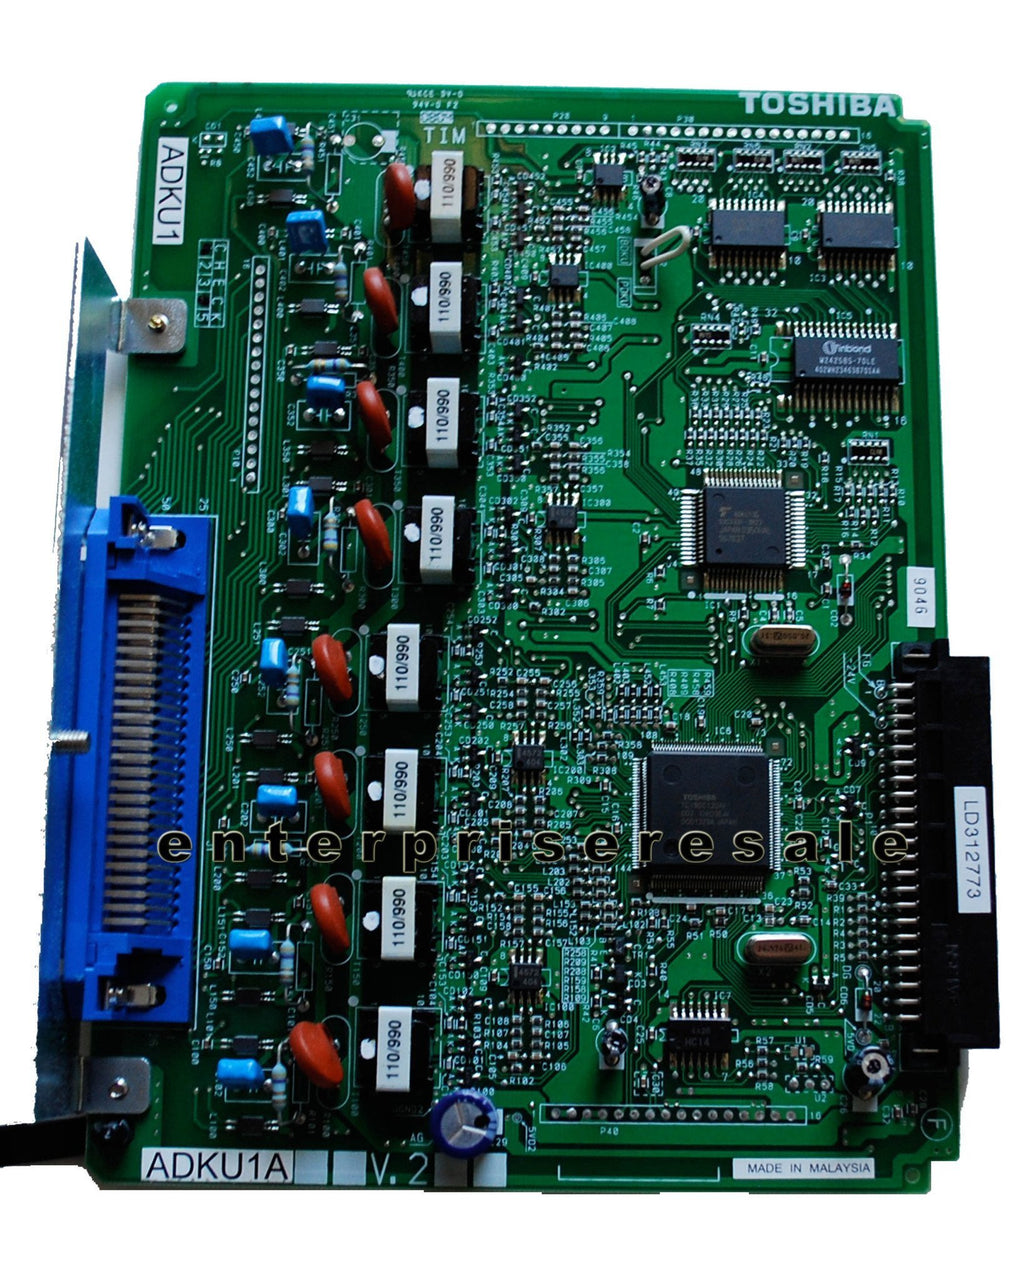 Toshiba Phone Switching Systems, PBXs Toshiba (ADKU1A) V.2 8 Port Station Card for CTX100 ADKU1